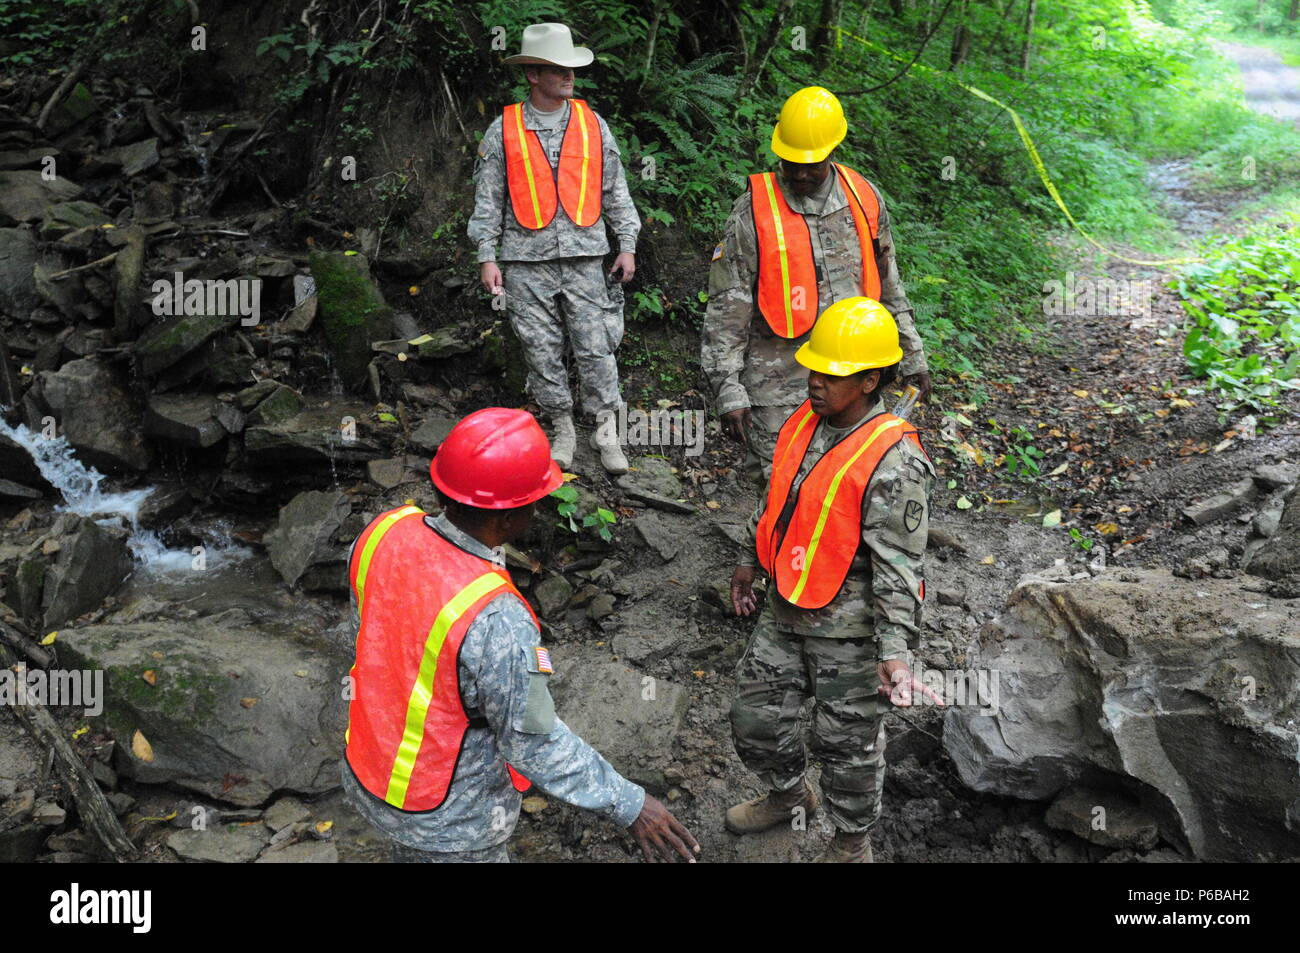 Staff Sgt. Gideon Hurtault, 662nd Engineer Support Company, explains to Battalion Commander, Maj. Nina Clarke-Brewley the work his team did to replace a culvert at Camp Dawson, West Virginia June 21. 104th Troop Command Staff and the Virgin Islands National Guard Chief of Staff Col. Shawn Harris visited the company while on annual training. - Stock Image